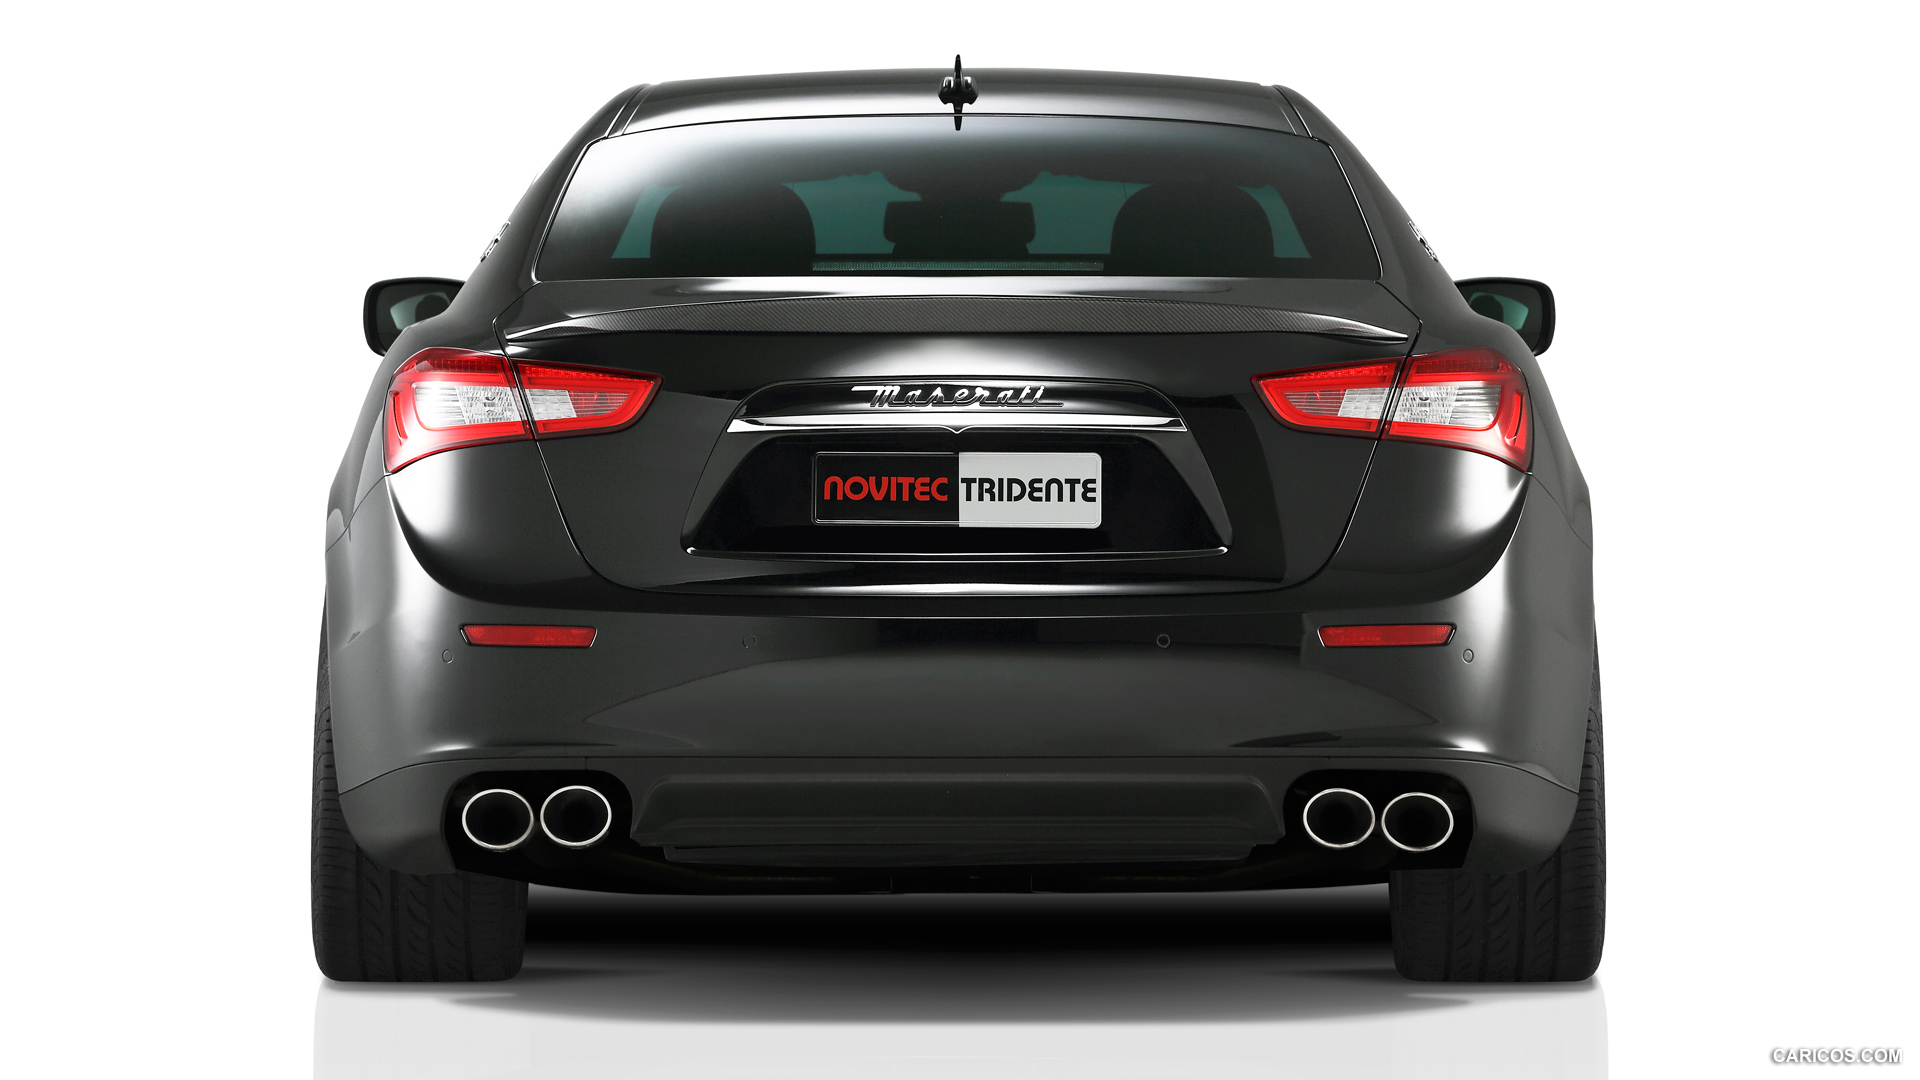 Novitec Tridente Maserati Ghibli photo 132250